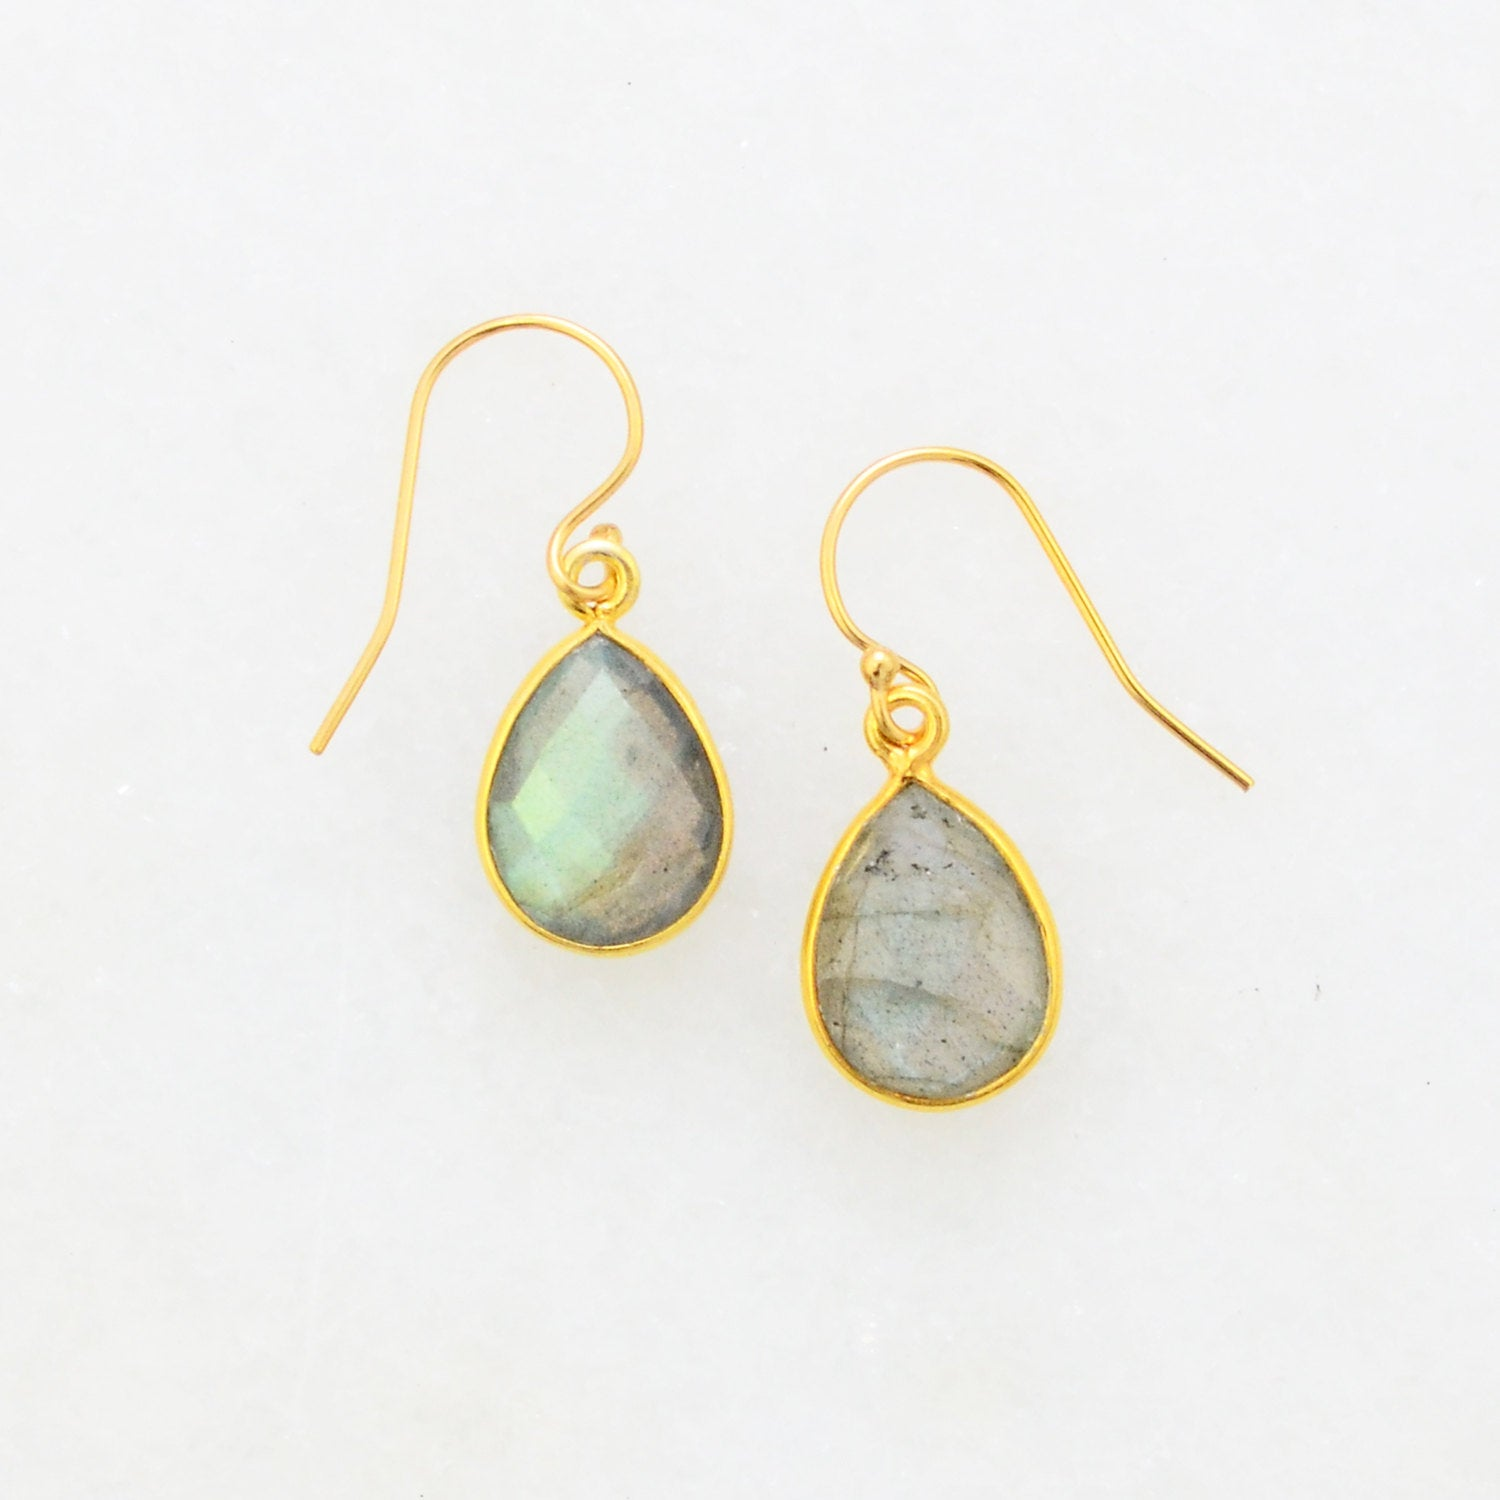 Labradorite Gold Earring - Blue Flash Earring - Teardrop Dangle Earring - Labradorite Silver Earring - Small Cute Earring - Bridesmaid Gift